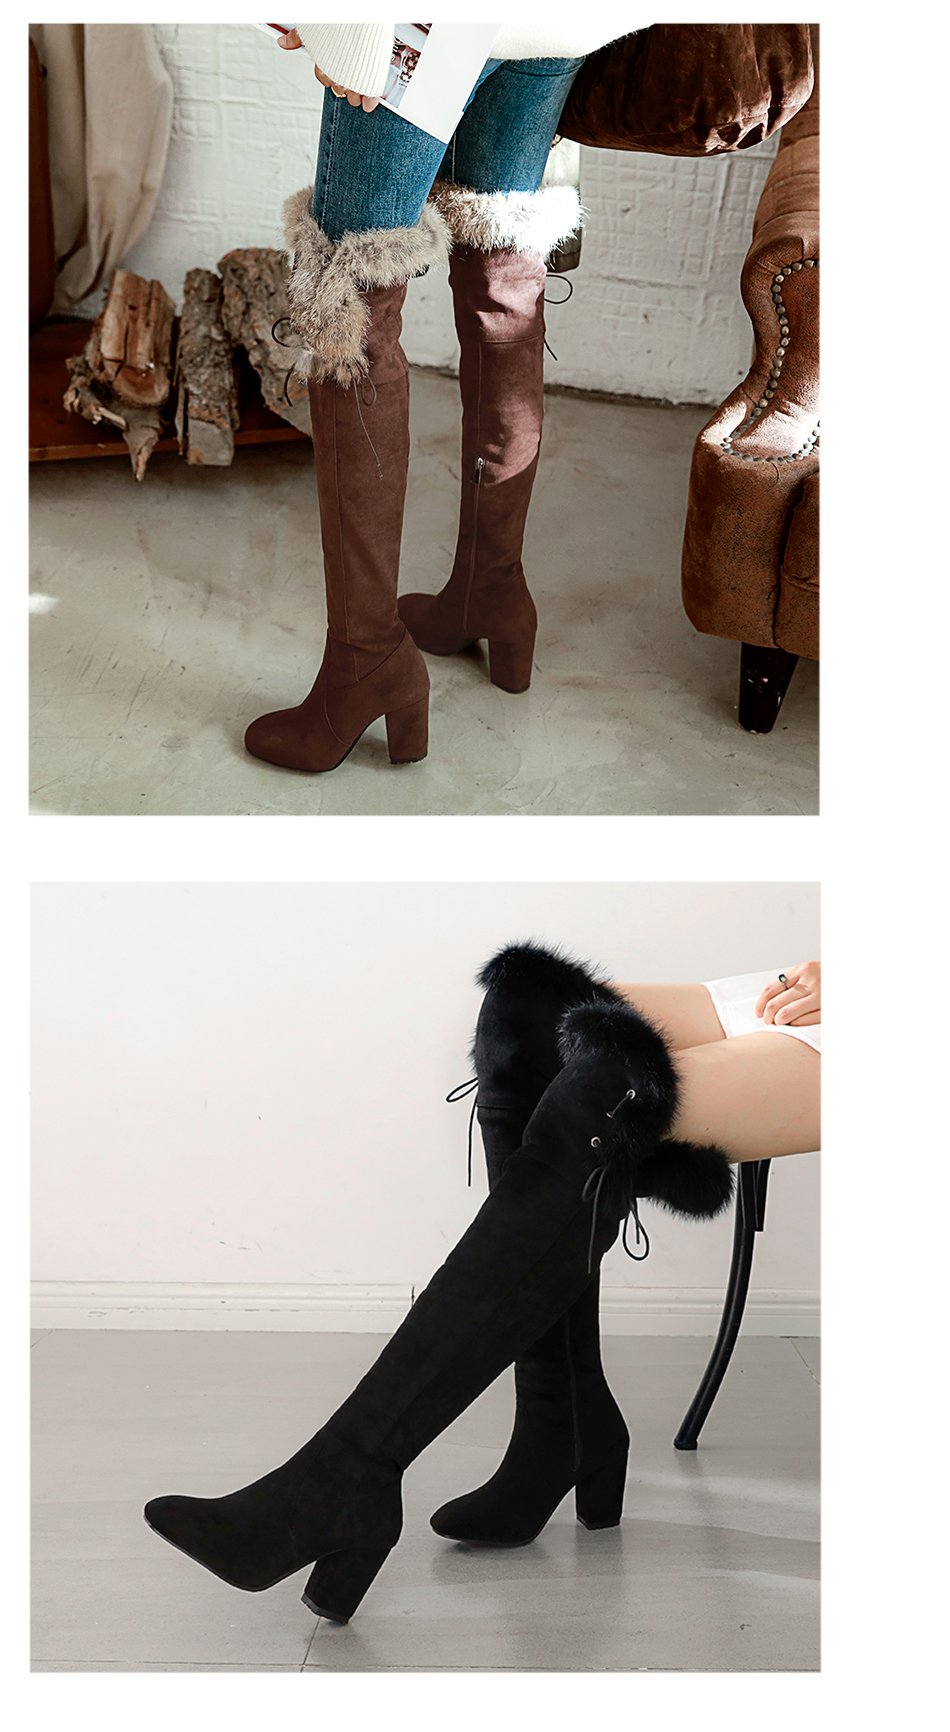 934f7114cee Gdgydh 2018 New Fashion Lacing Winter Knee High Boots Women High Heel Woman  Rubber Sole Leather Boots Spring Autumn Female ShoesUSD 53.99 pair